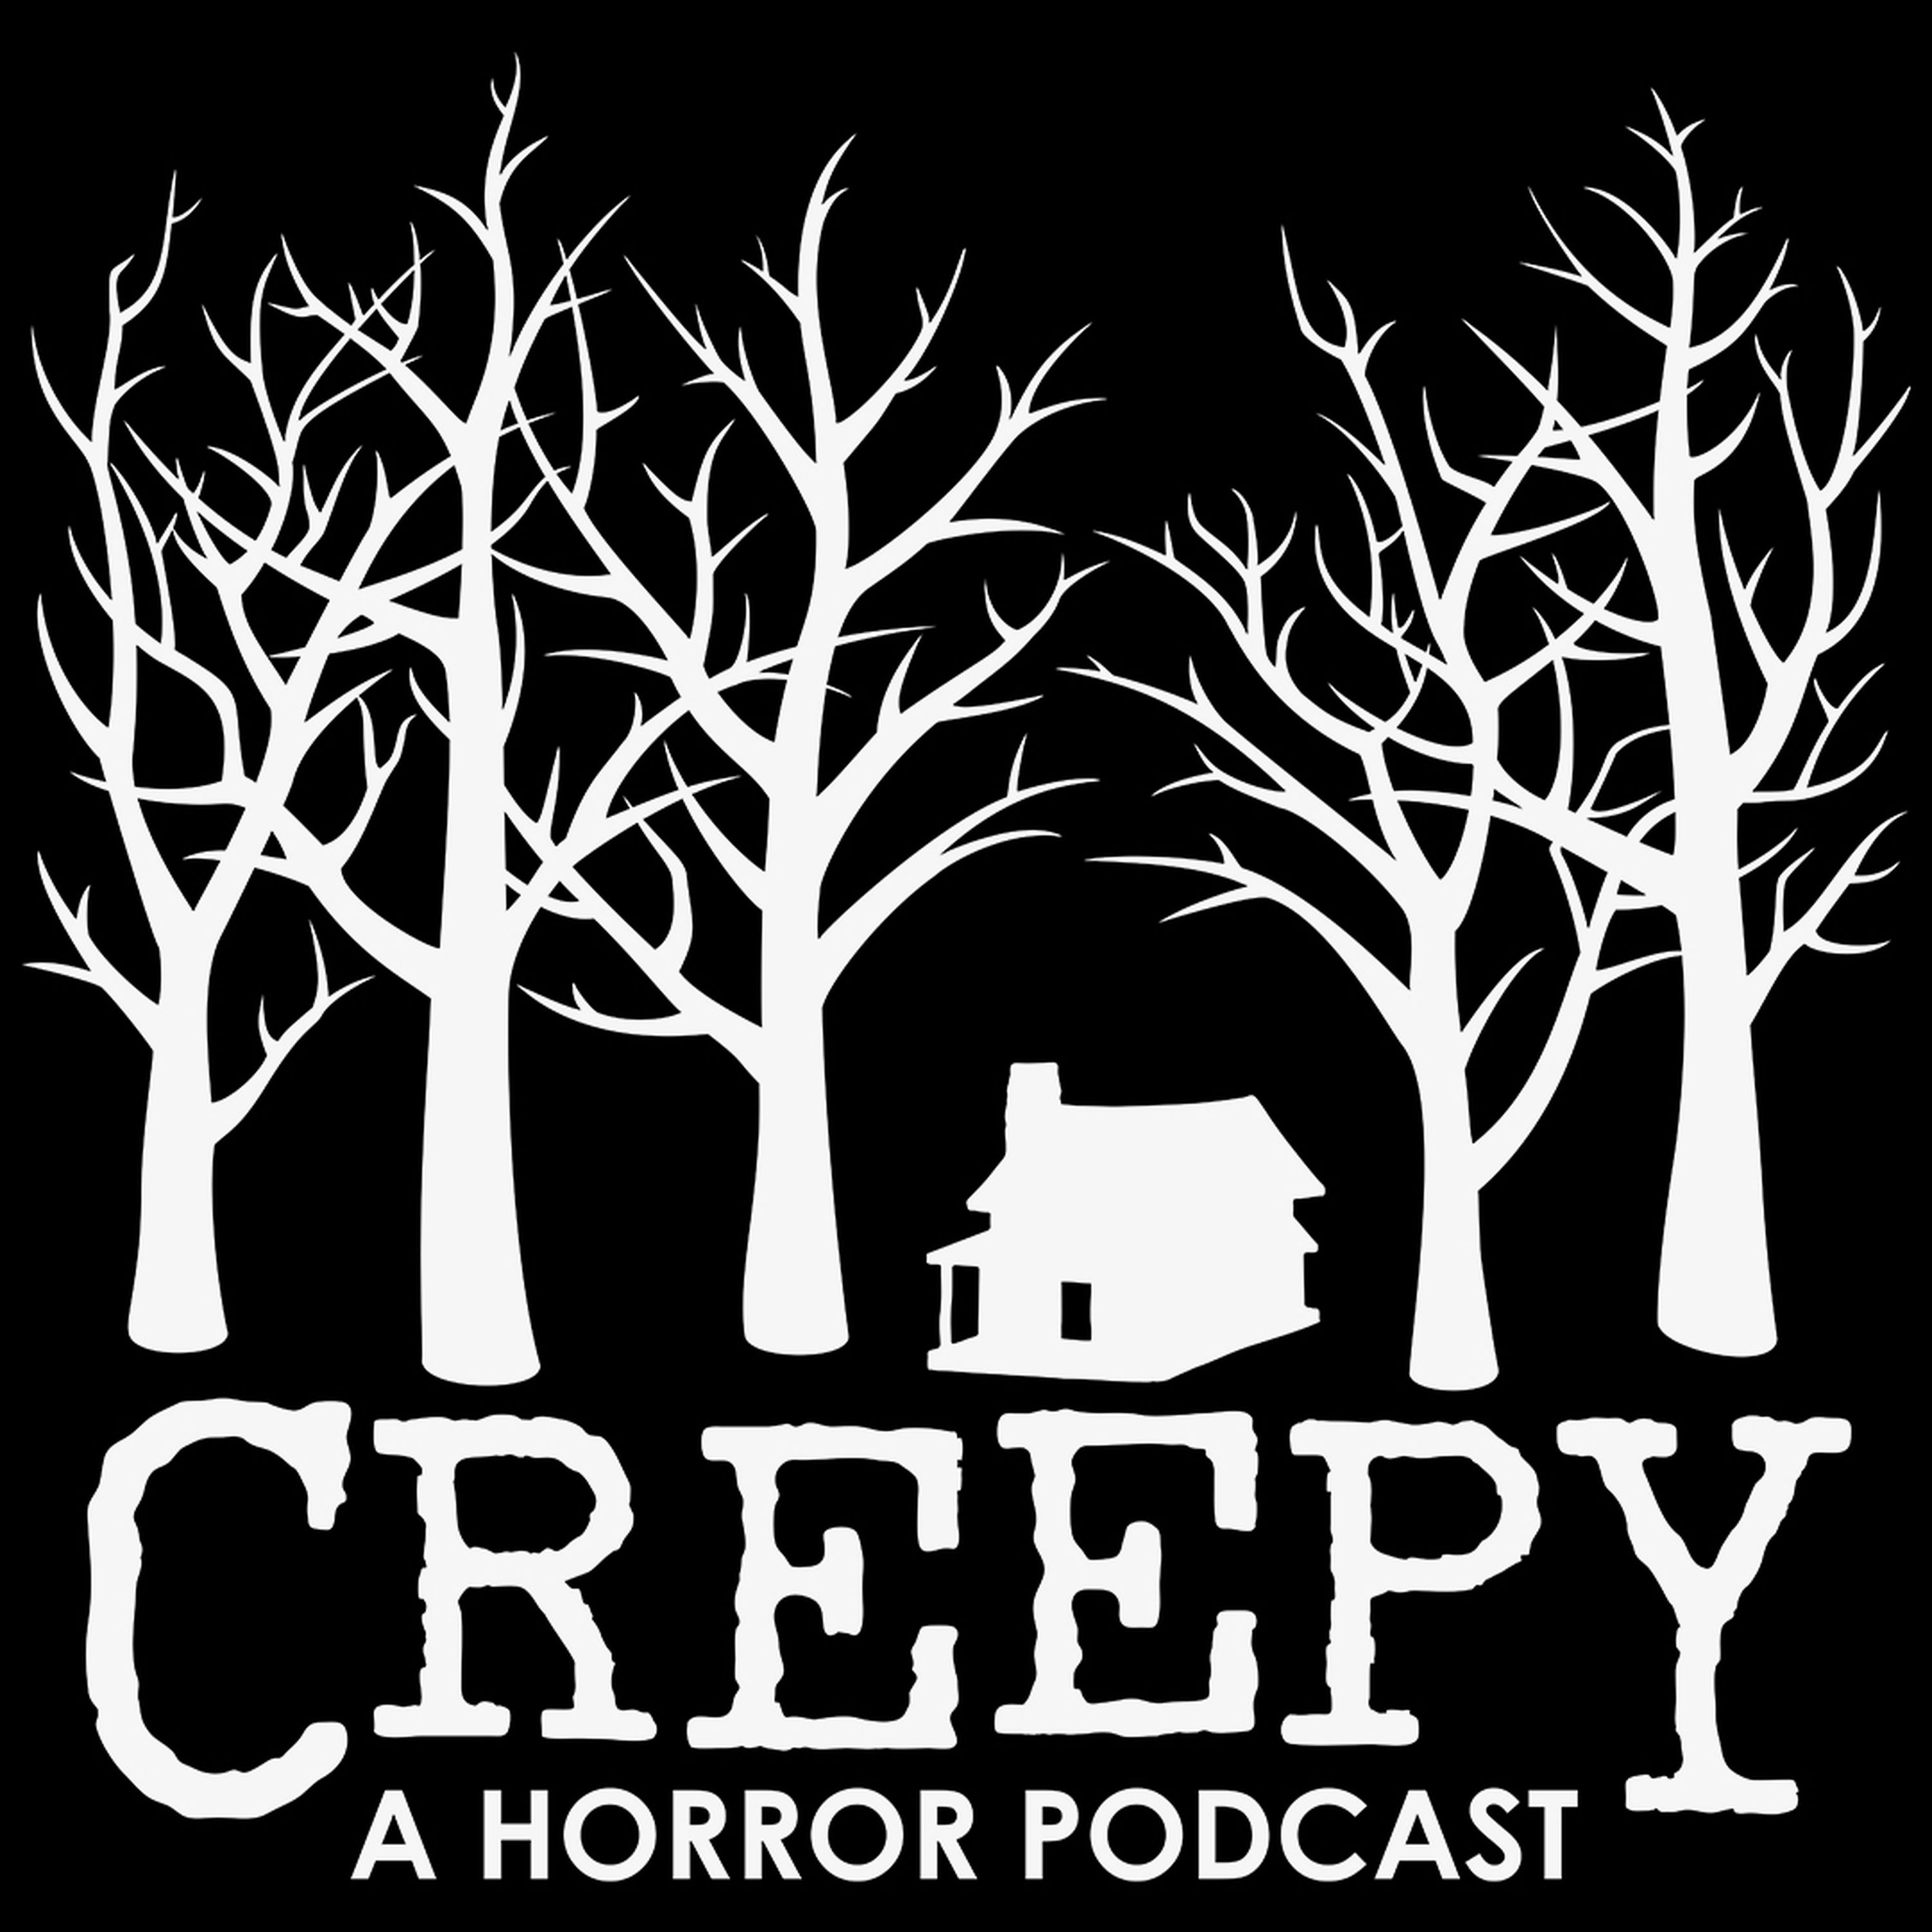 Best Let S Not Meet A True Horror Podcast Podcasts Most Downloaded Episodes Especially the last story will haunt you into your. best let s not meet a true horror